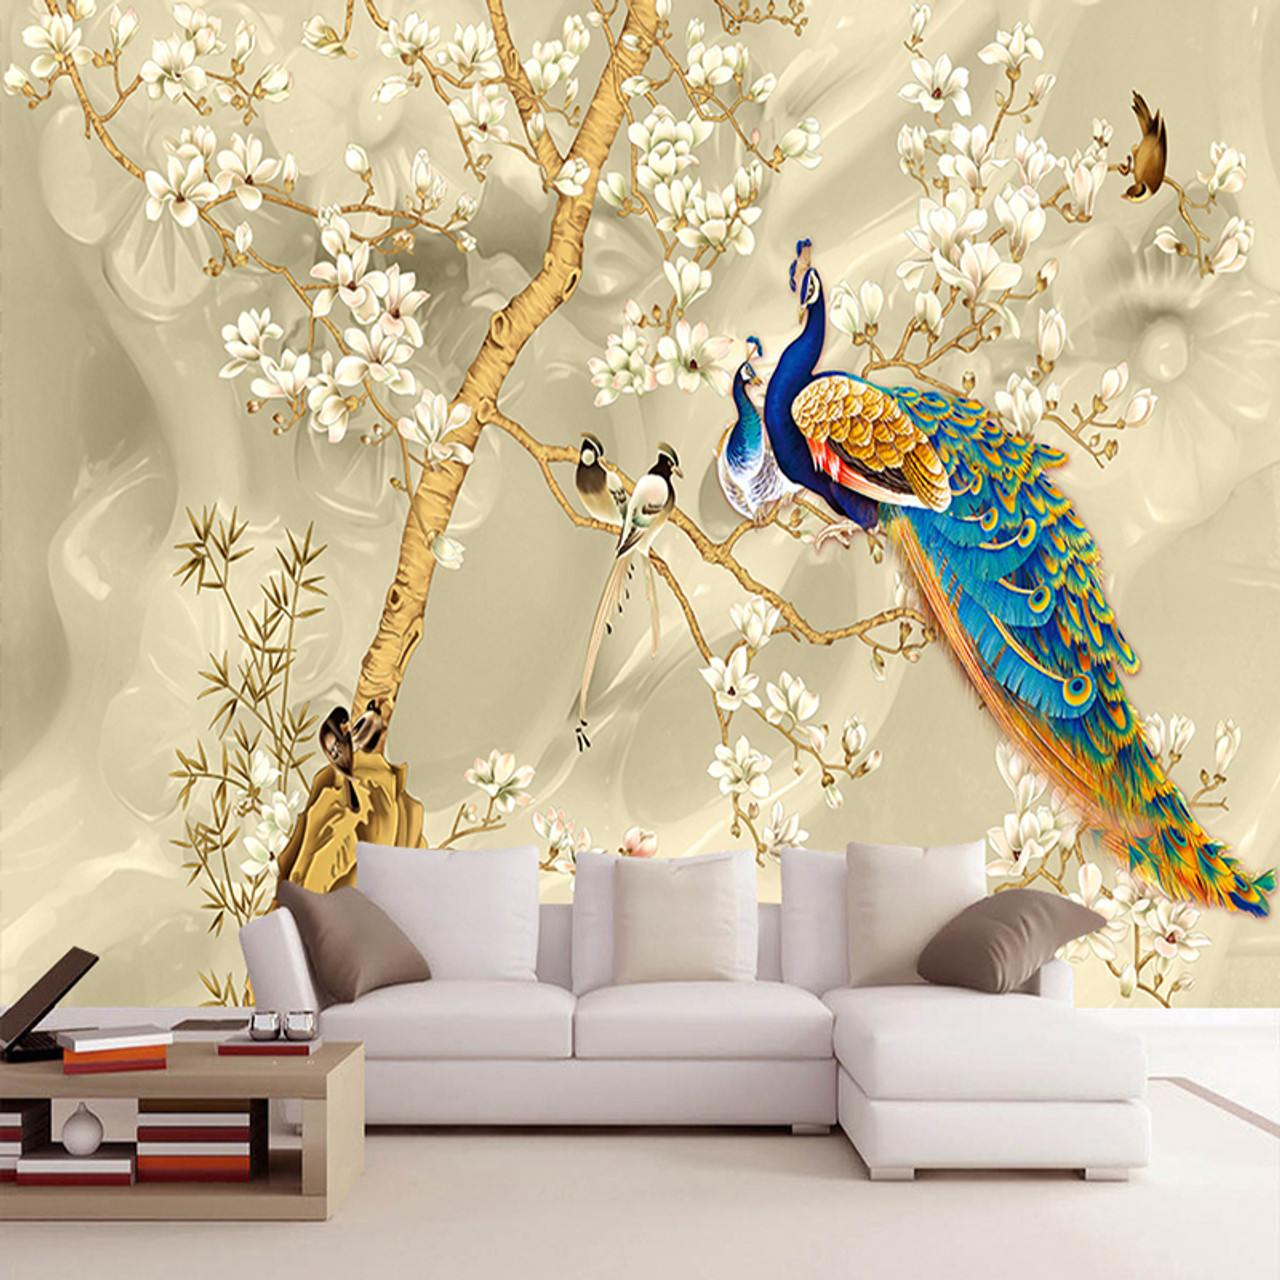 Custom Mural Wallpaper 3D Stereo Magnolia Flowers Peacock ...